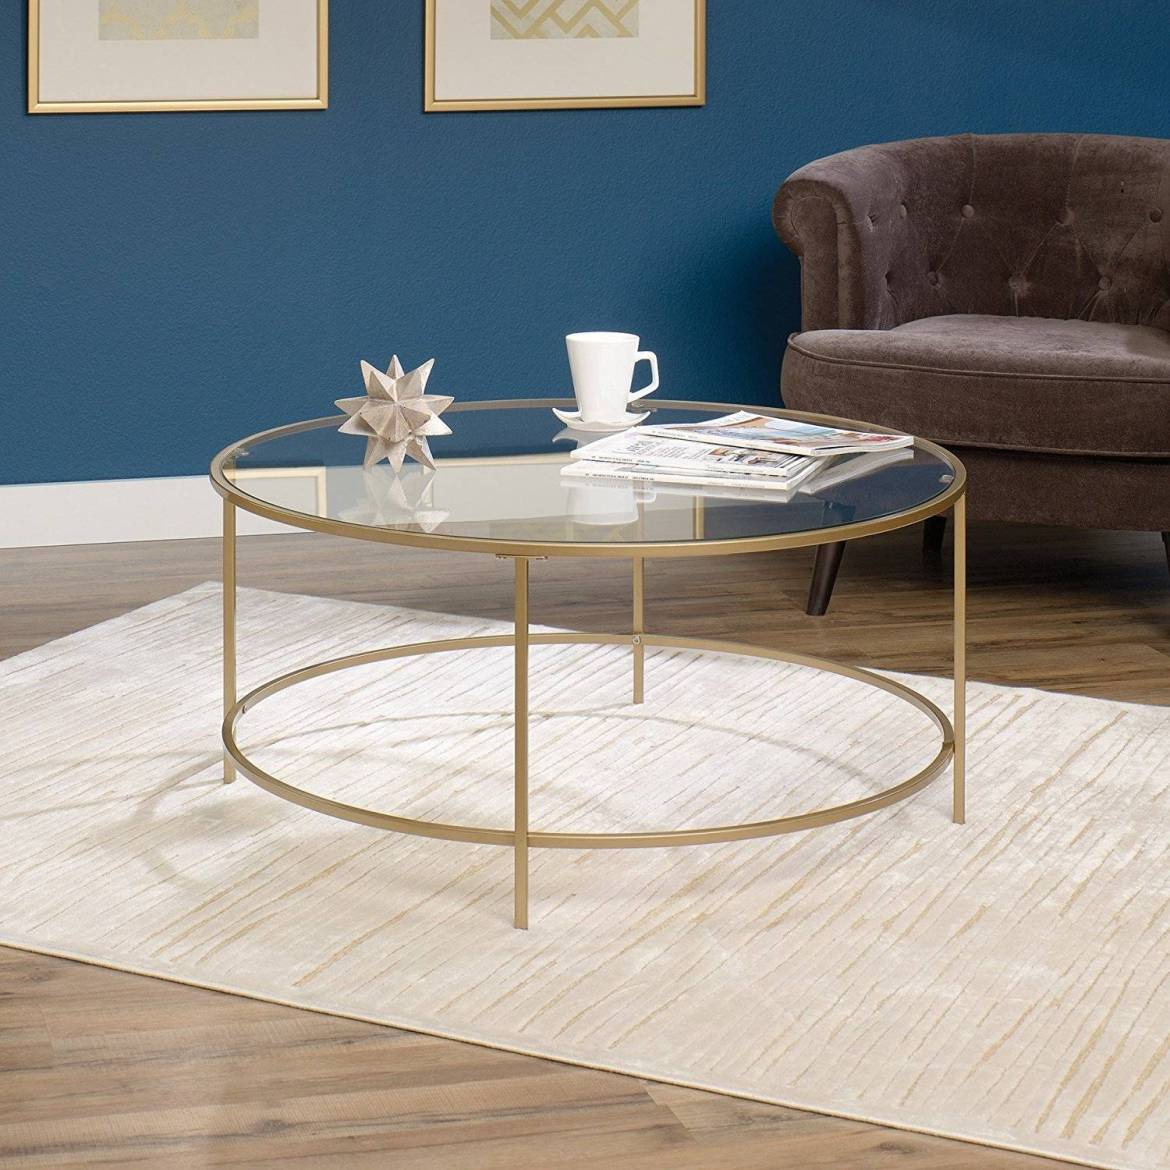 MegaRoundup: 10 Online Sources for Coffee Tables Under $150